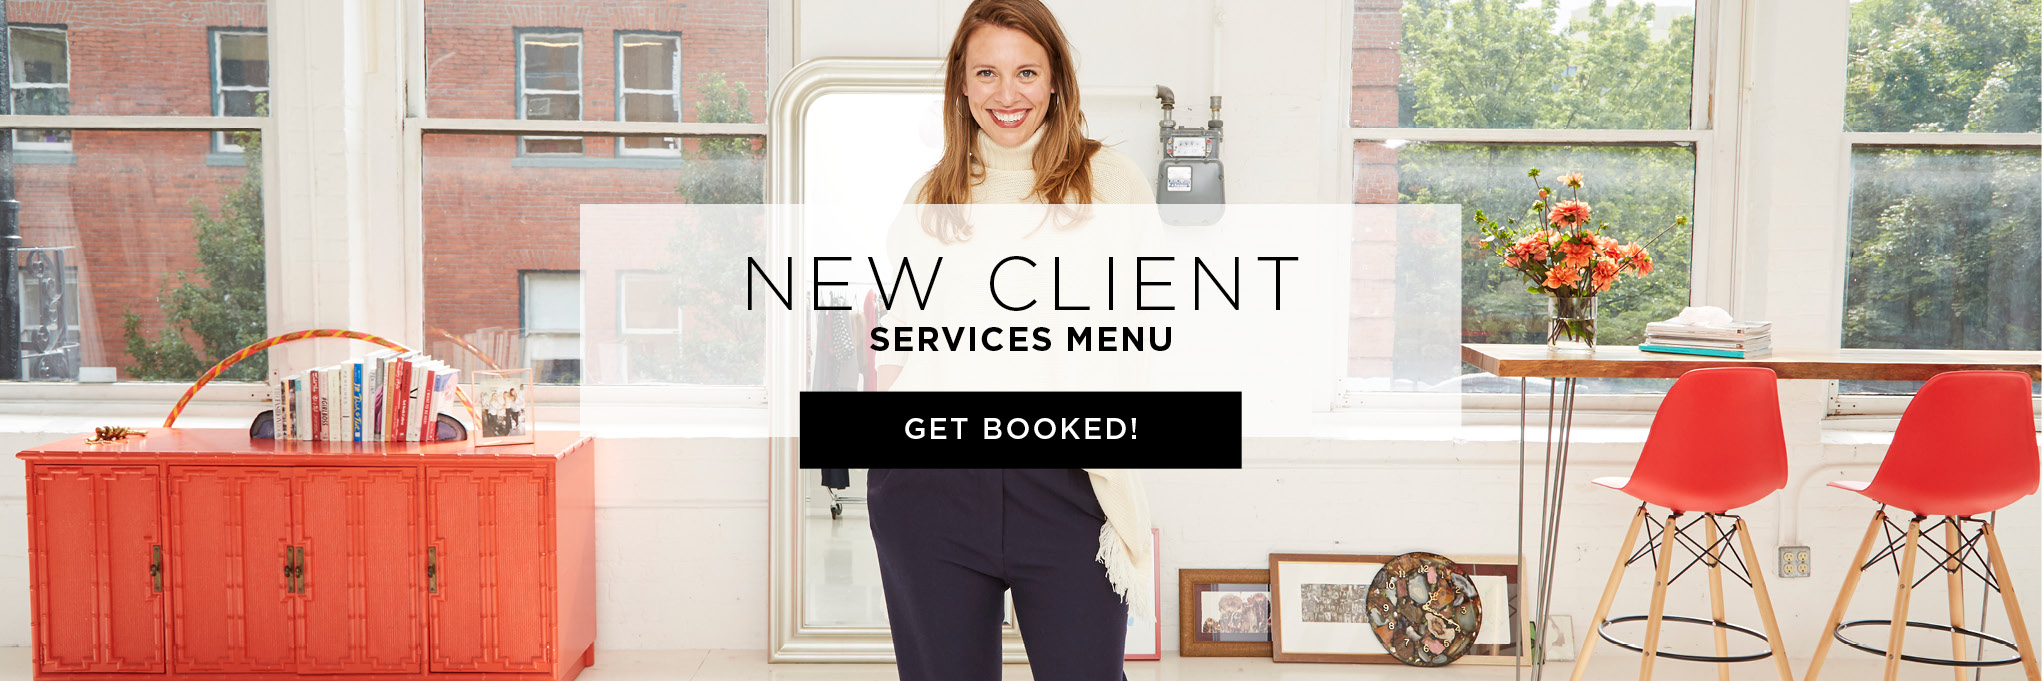 BANNER_NEW CLIENT_GET BOOKED